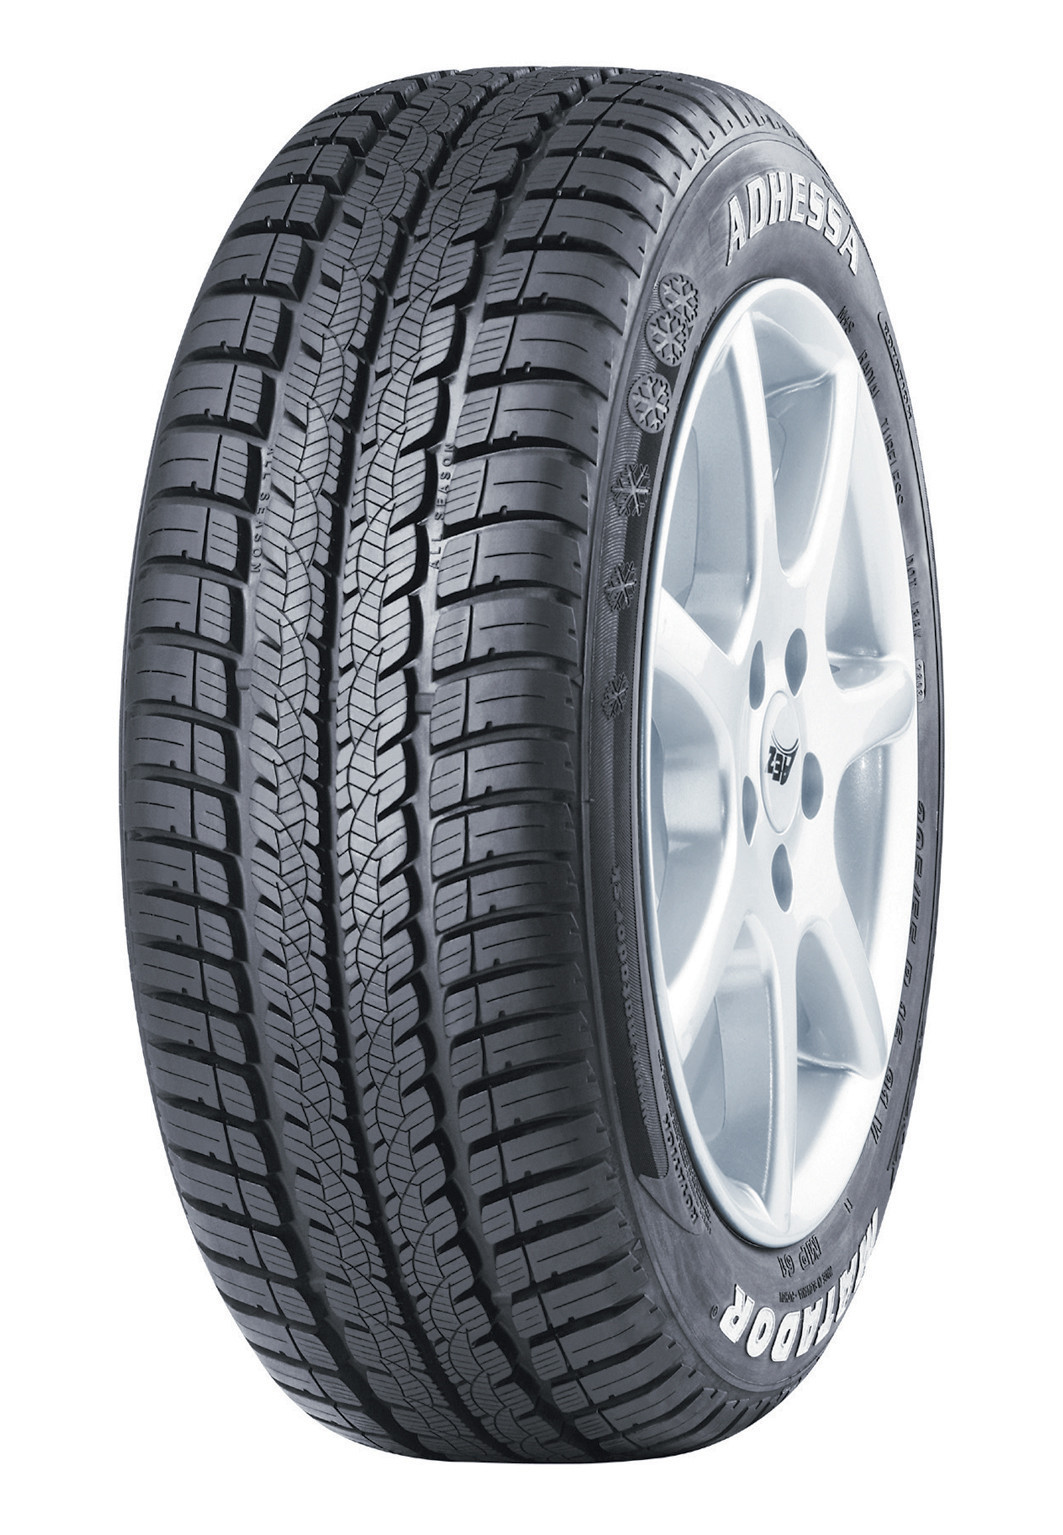 Anvelopa All Season 175/70R13 82T Matador Adhessa Mp61